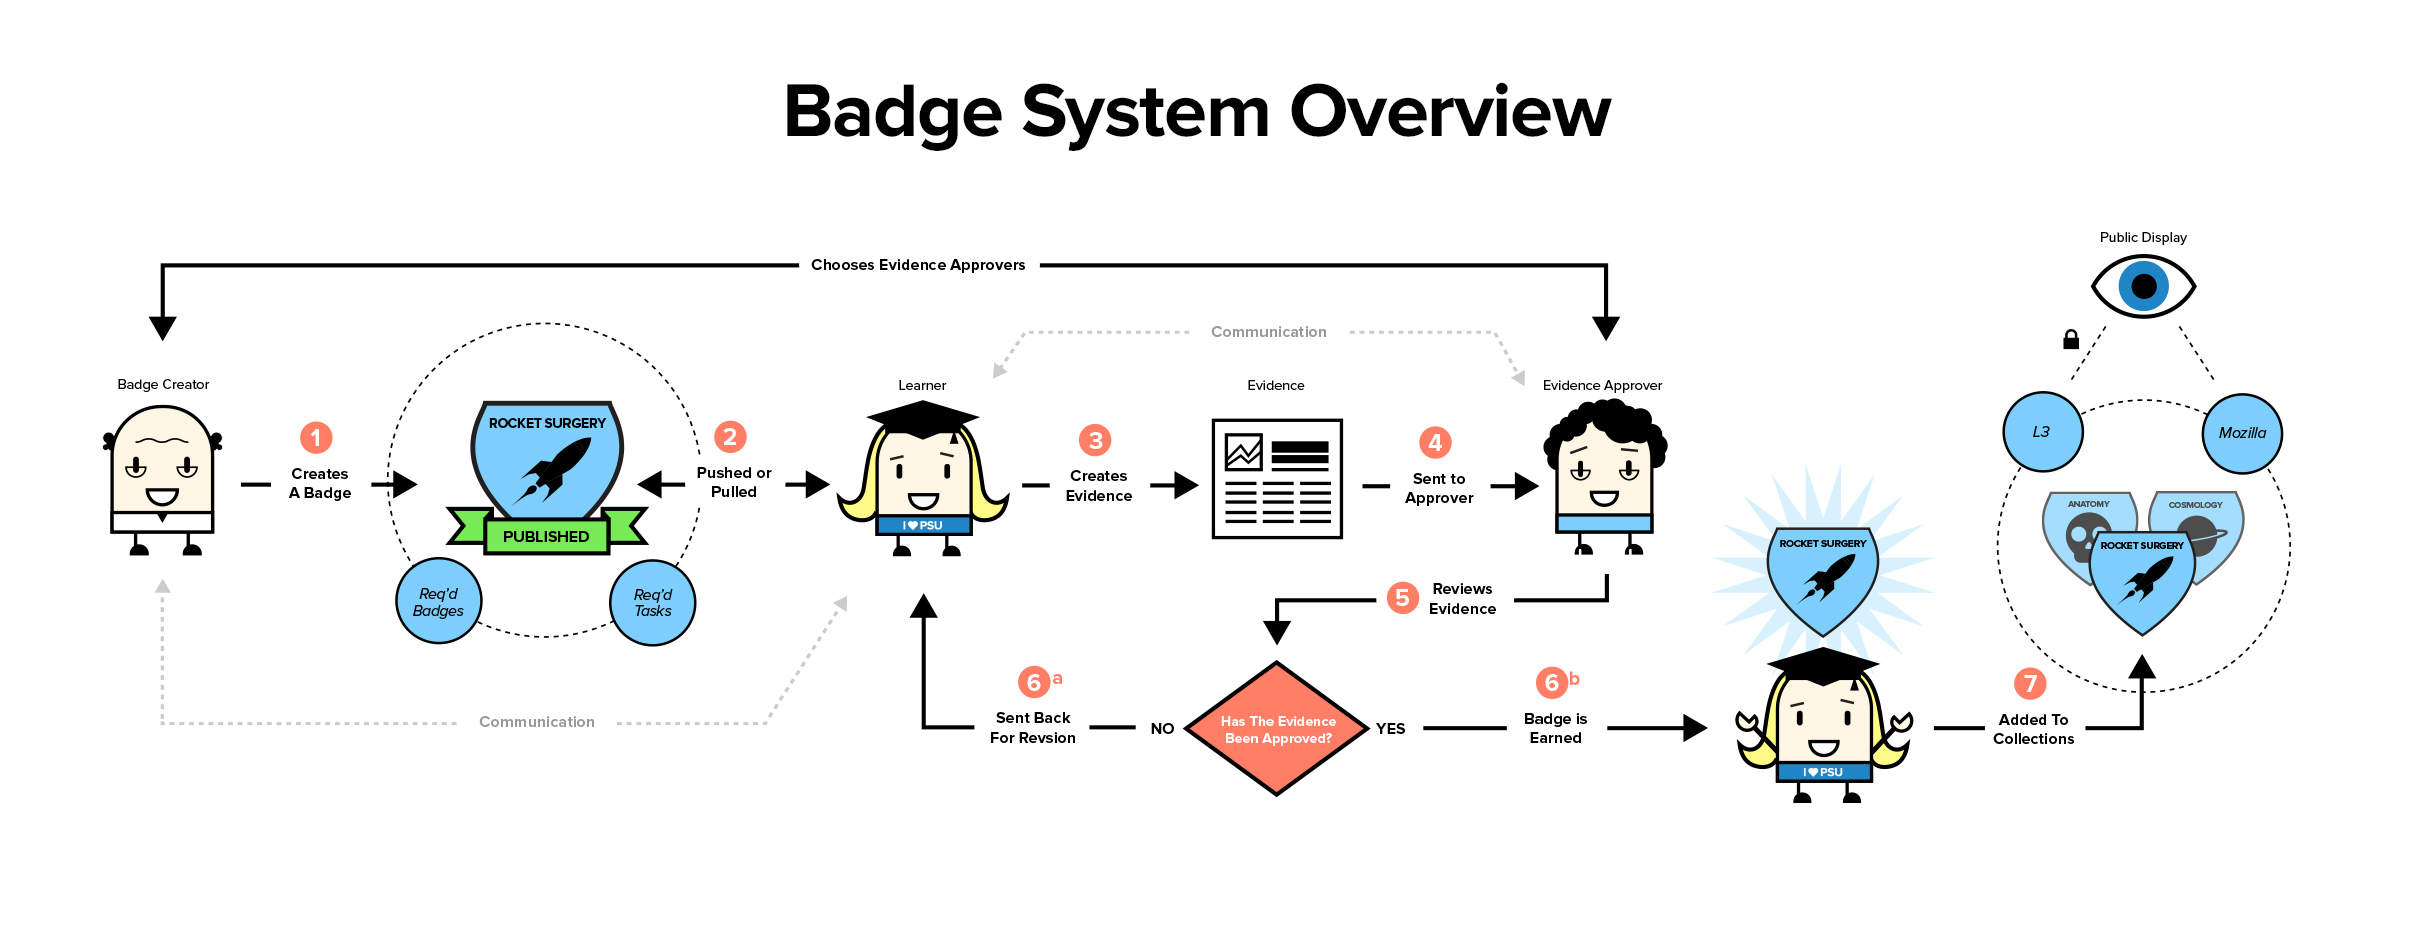 A flow chart showing the steps of earning a digital badge from beginning to end. The image starts with the earner choosing their badge and ends with choosing how the badge should be displayed, publicly or private.